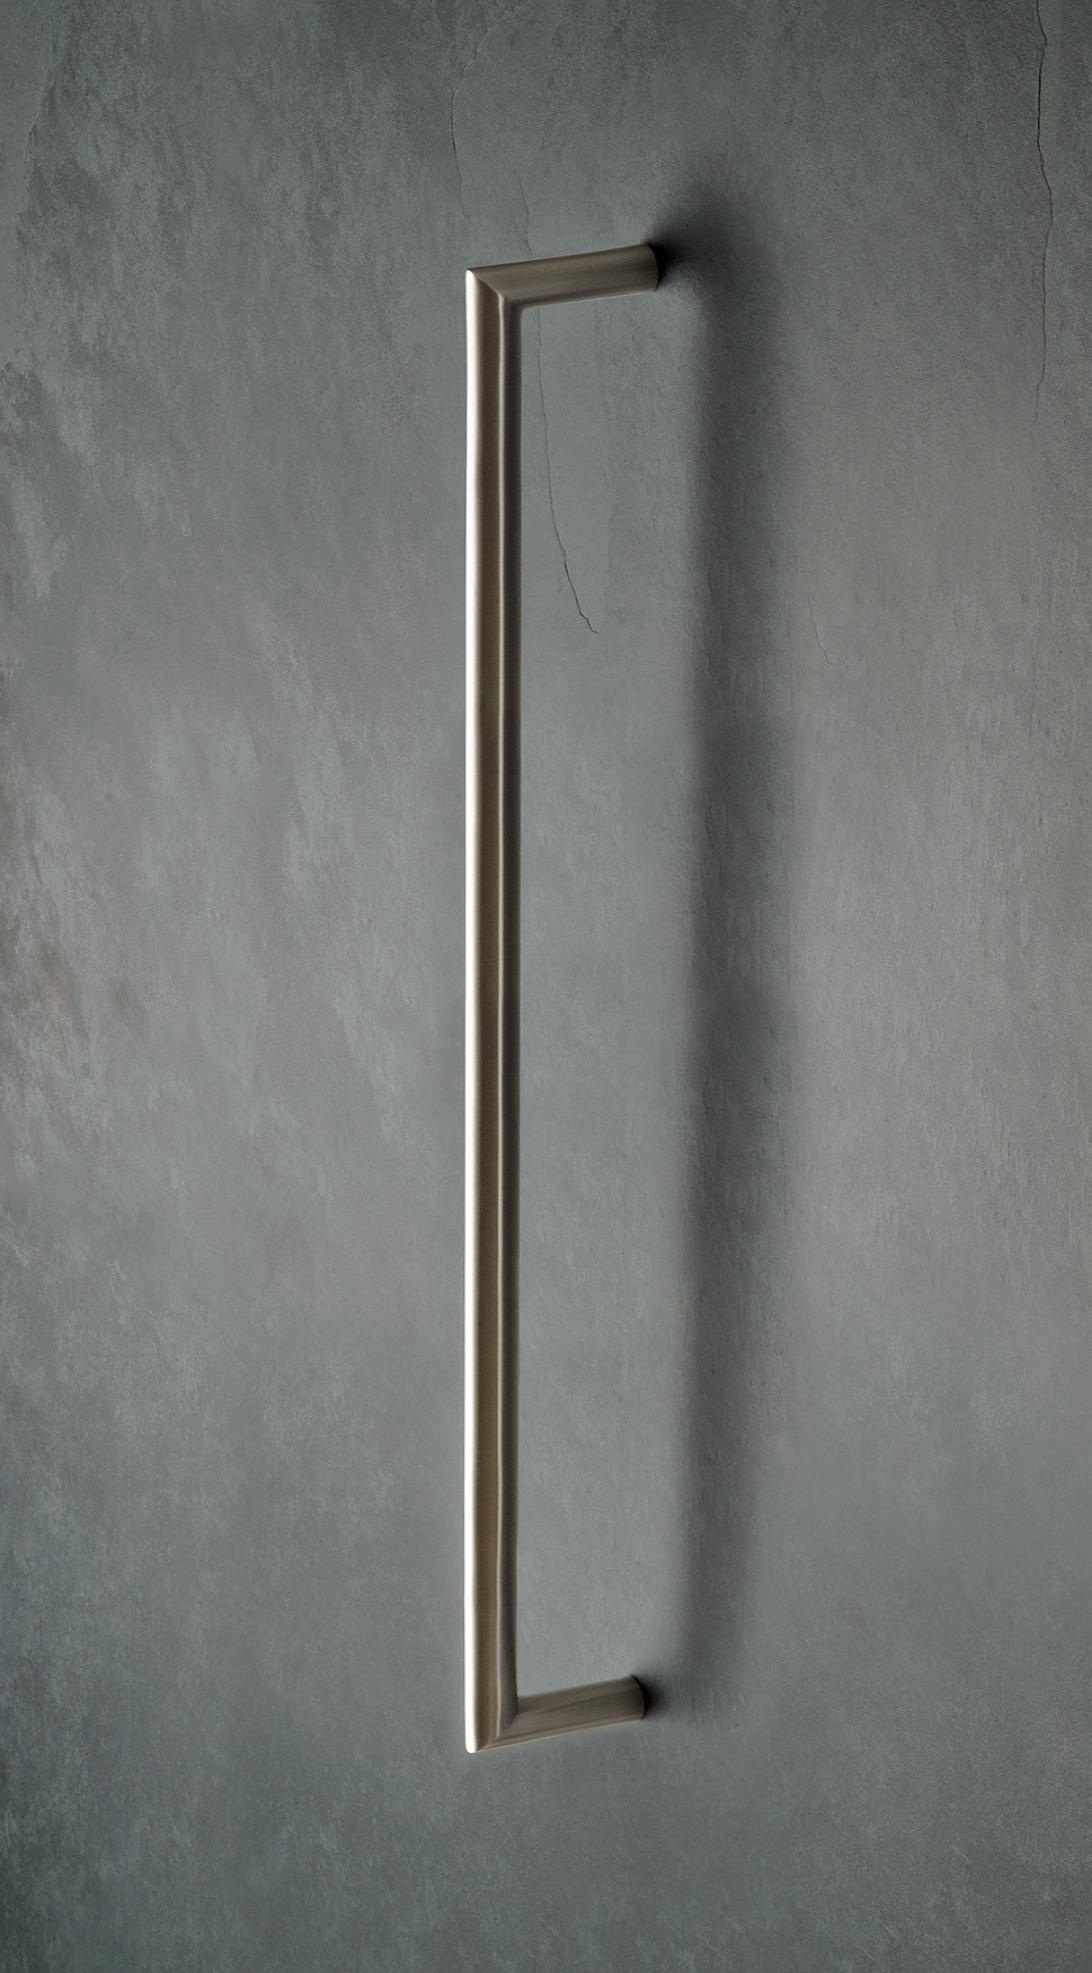 ASPH018 / 118 - ASSA ABLOY Pull Handle